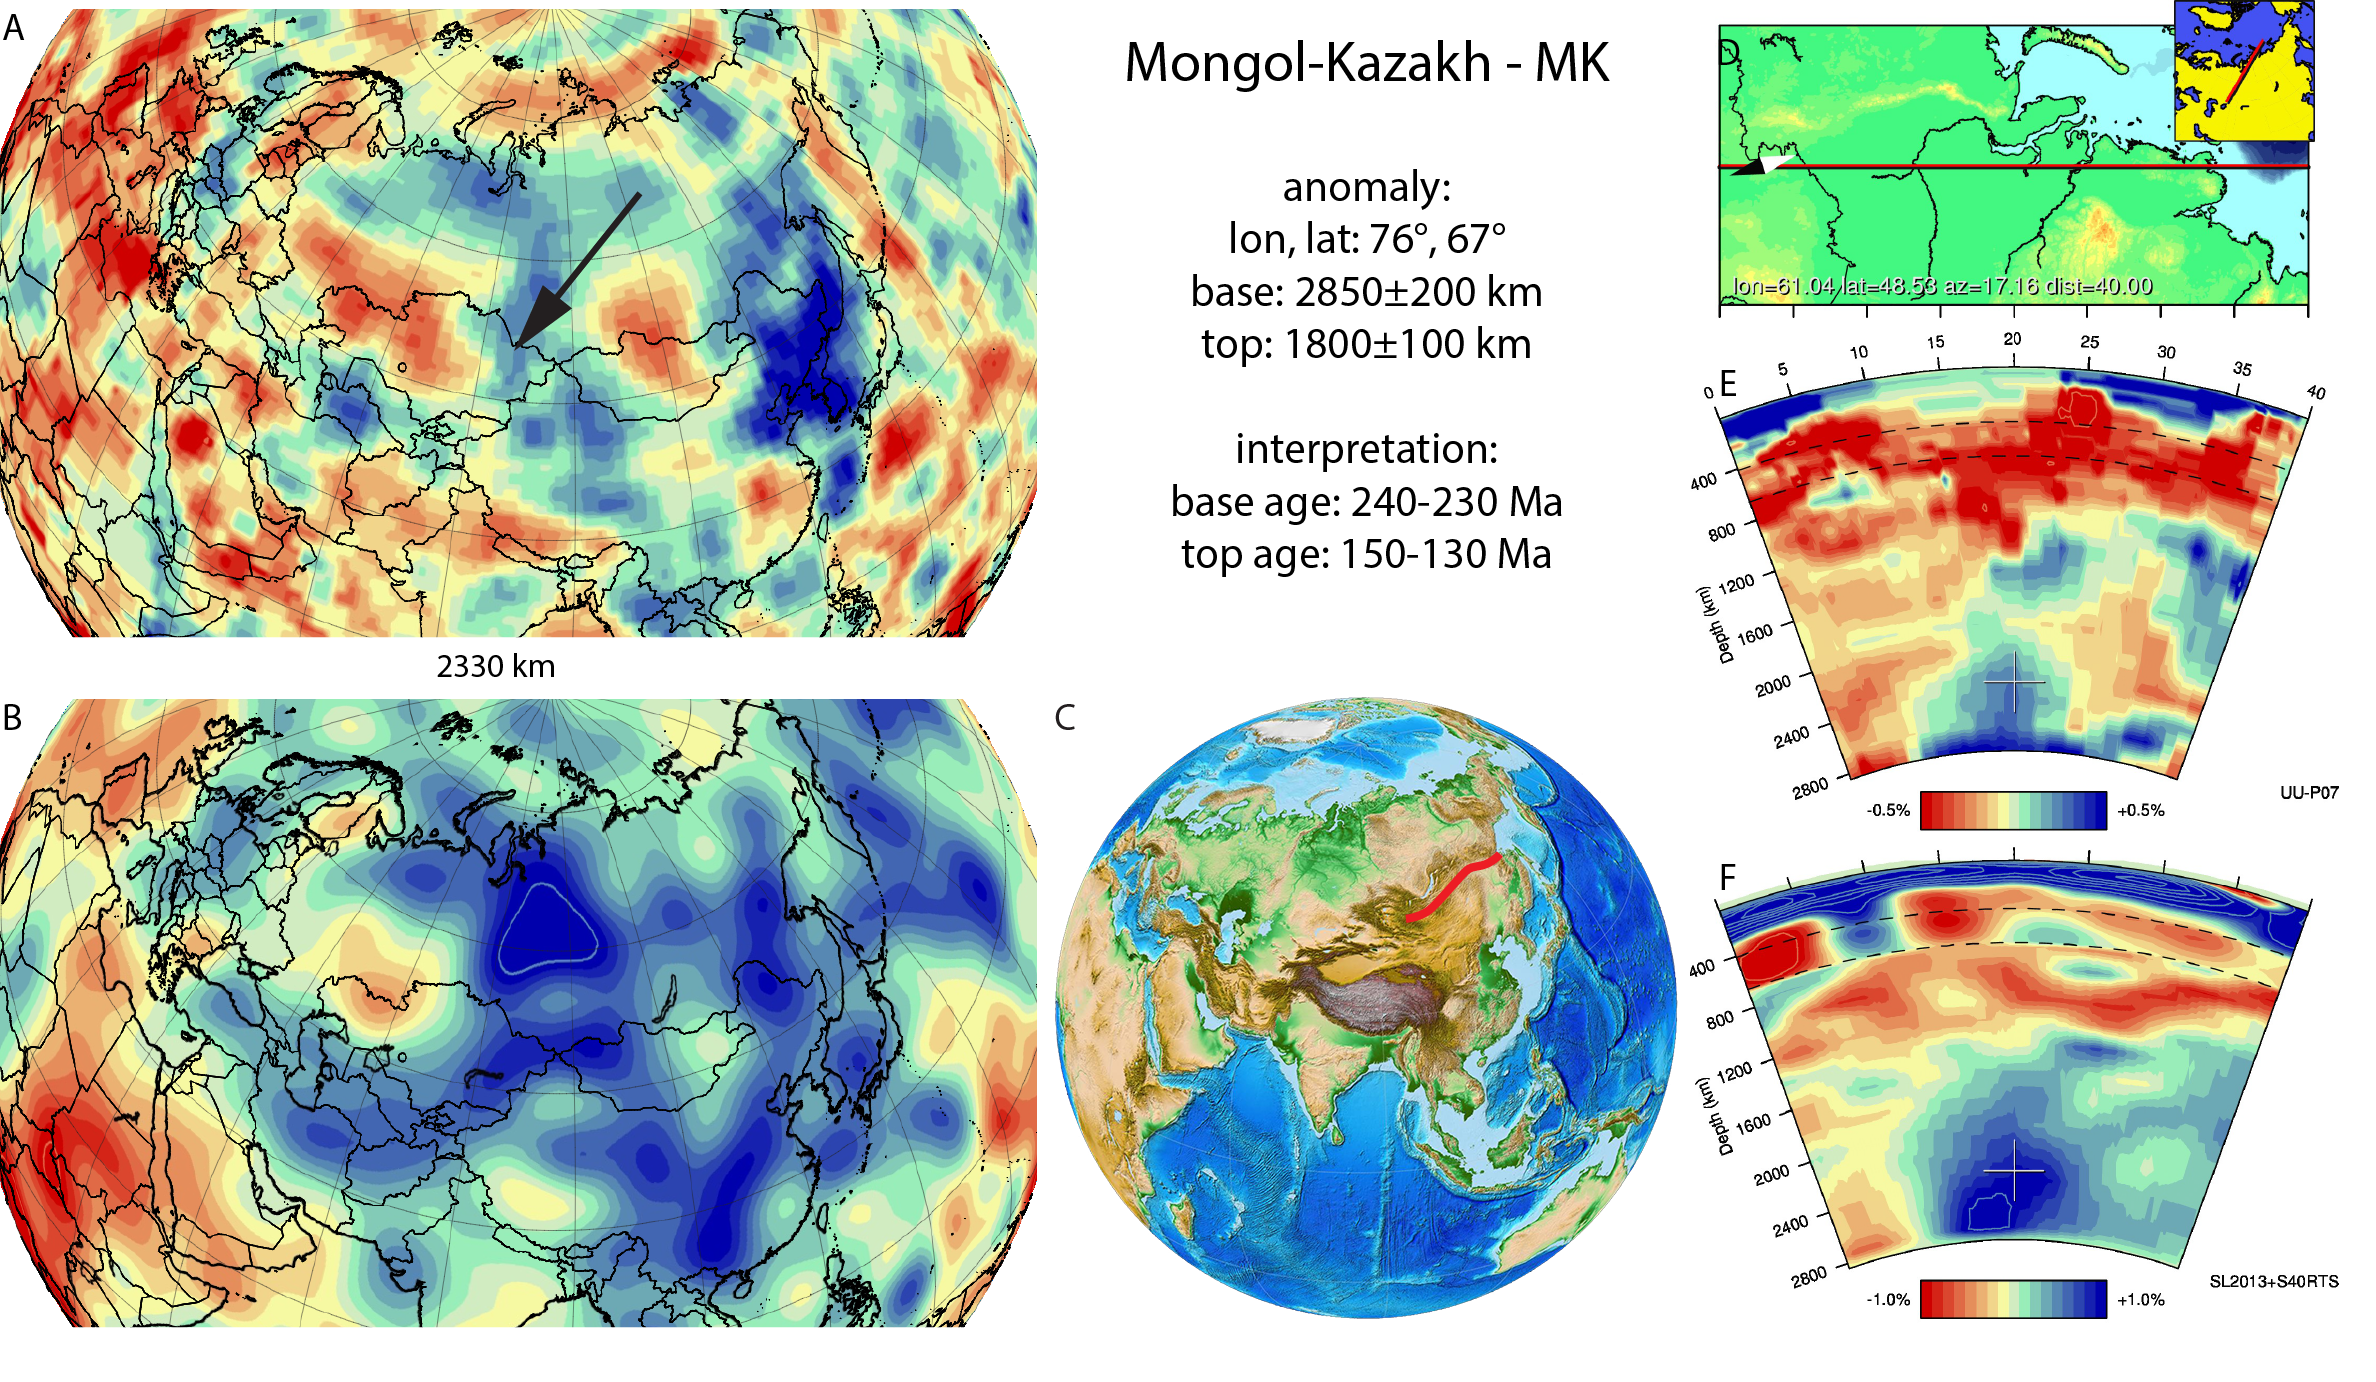 Figure A63. Mongol-Kazakh anomaly, interpreted as the Mongol-Kazakh slab, with (horizontal) [vertical] cross sections through (A)[D] the UUP07 p-wave) and (B)[D] the combined SL2013 and S40RTS s-wave models at 2330 km; C) the location of the modern geological record that we interpret to have formed during the subduction of the slab.